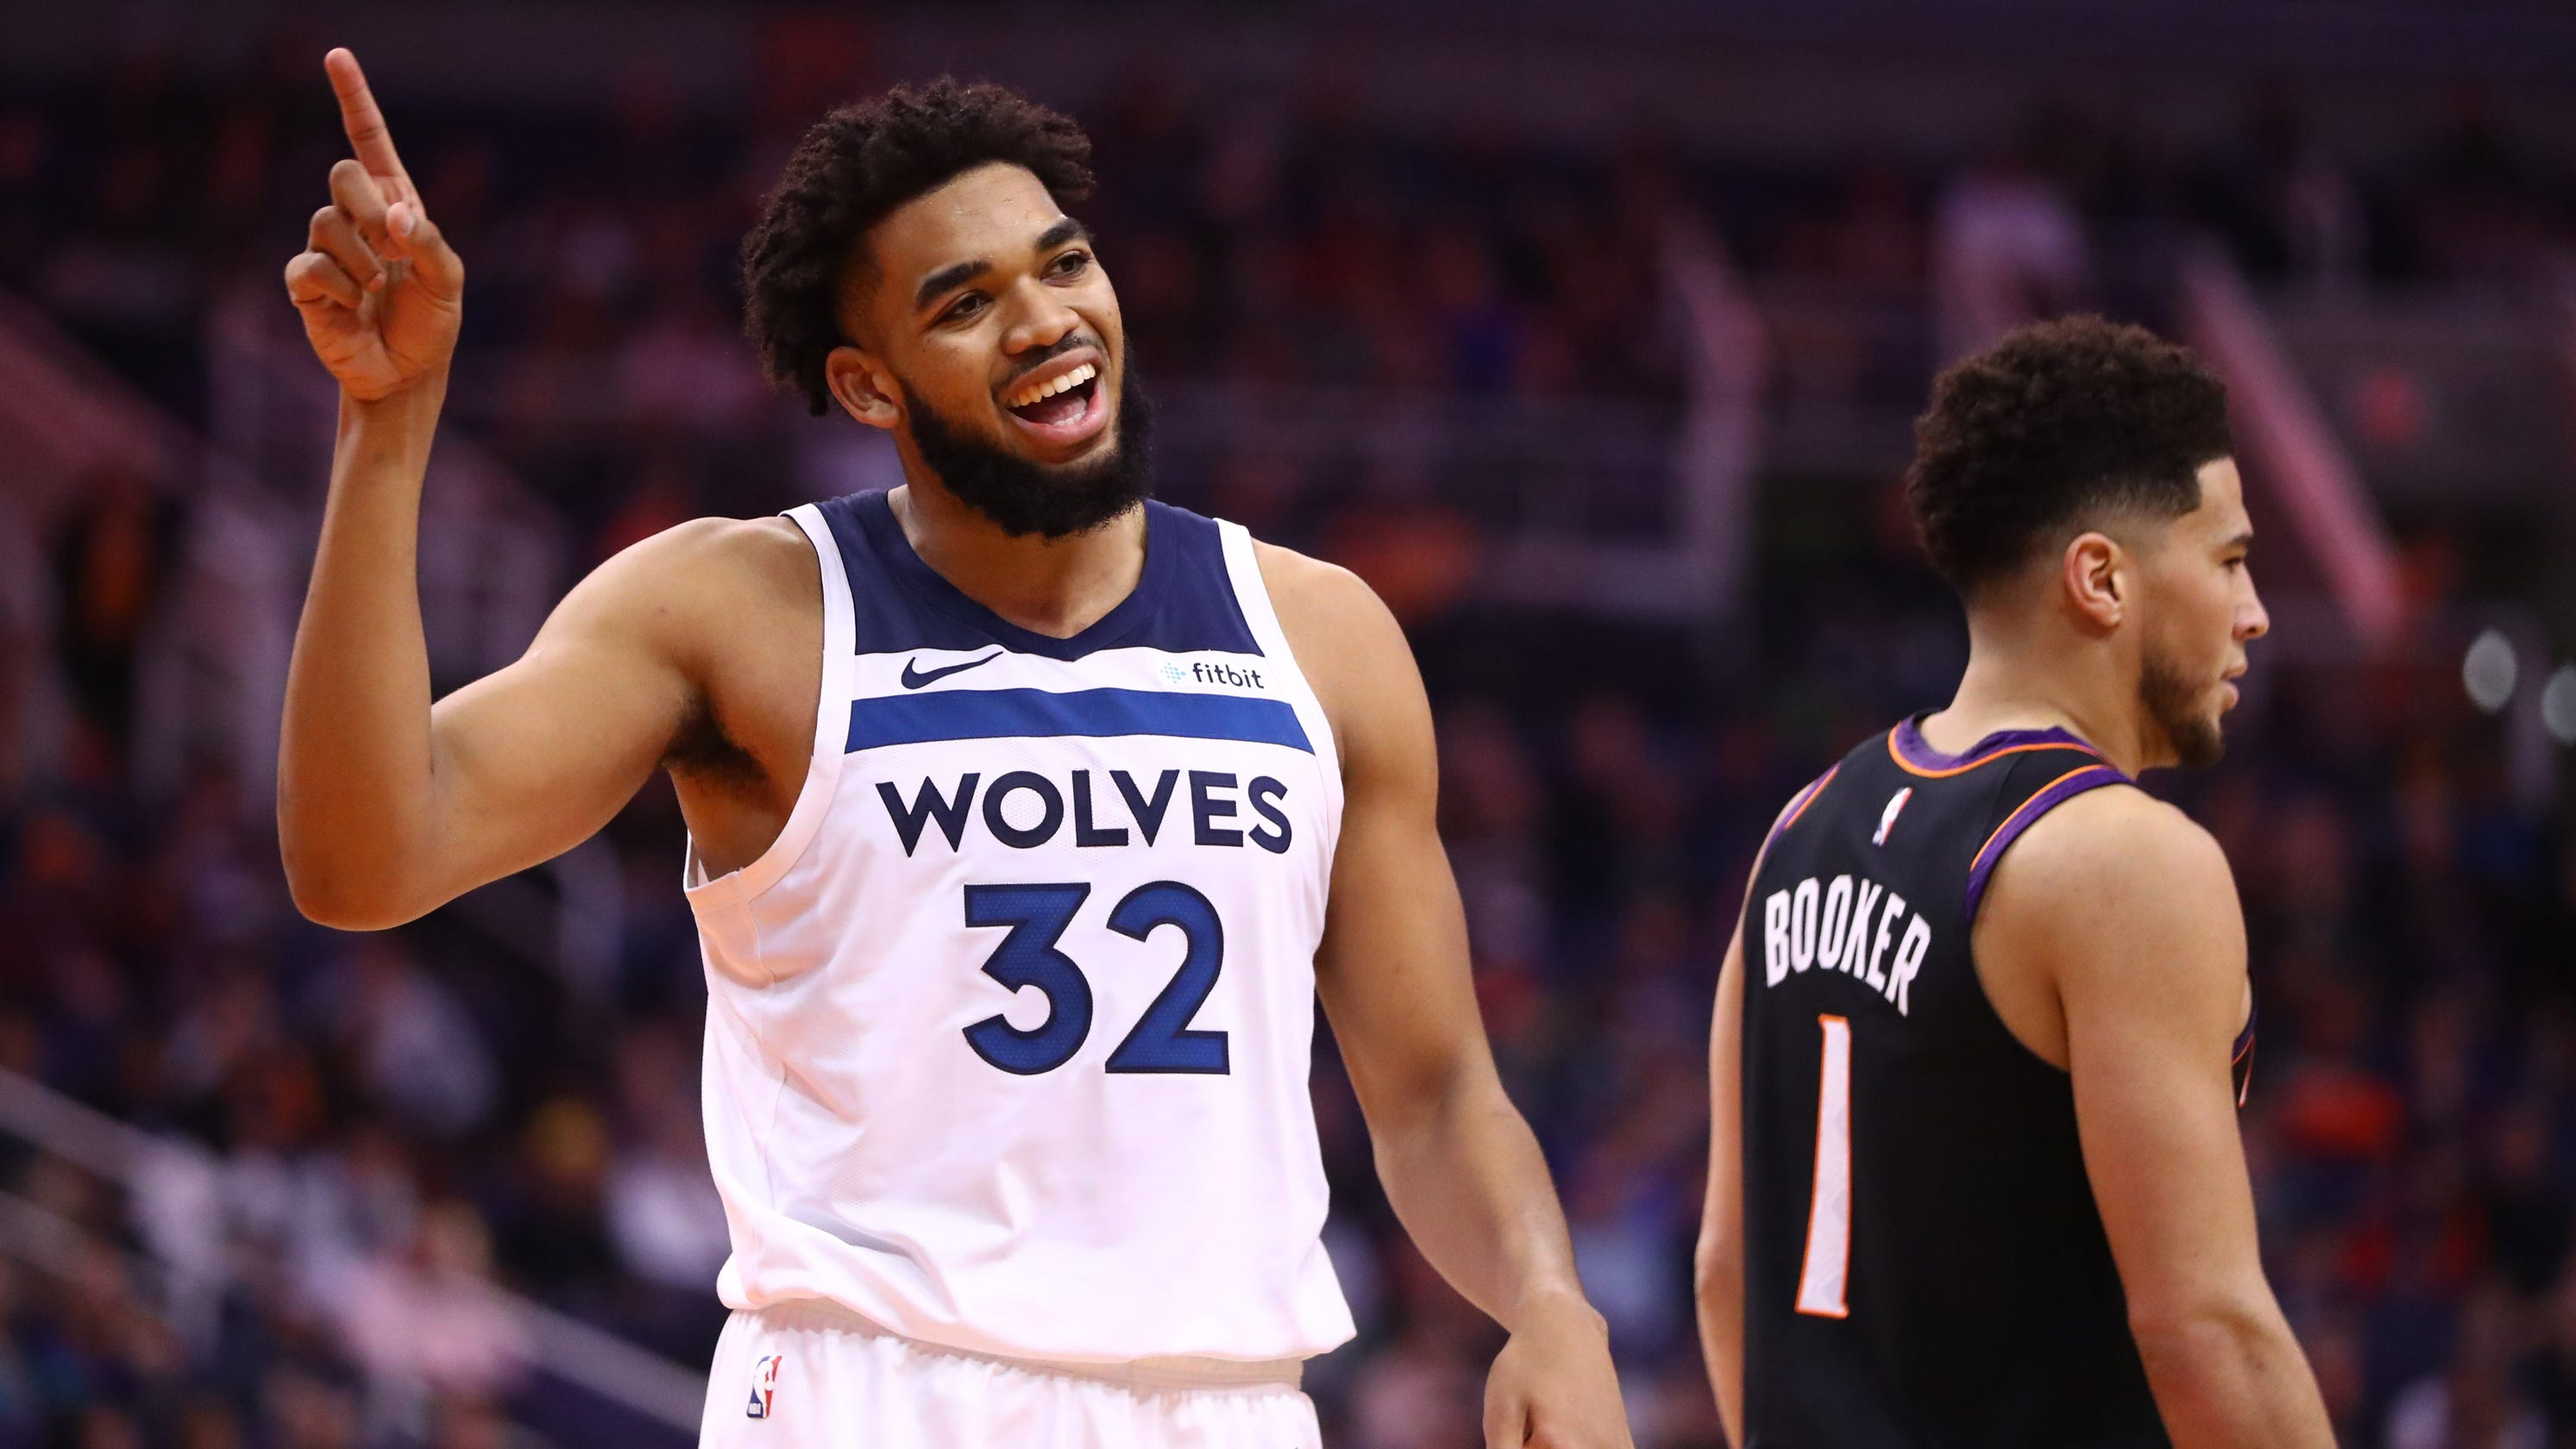 Karl Anthony Towns Trade Suns Fans Sound Off On Timberwolves Center